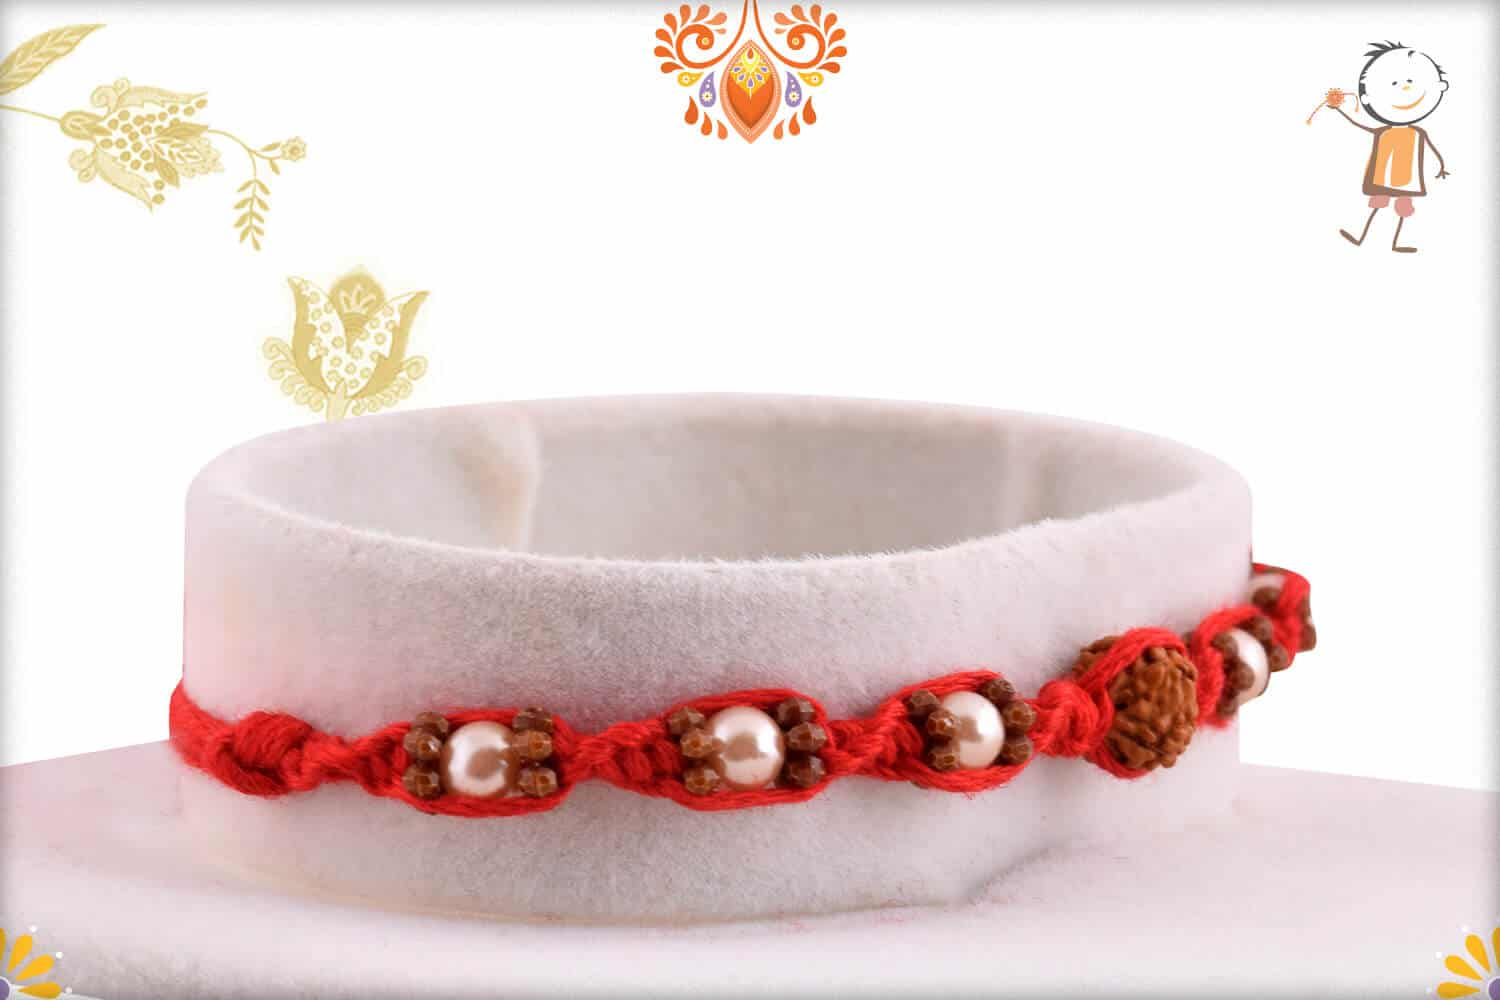 Uniquely Knotted Rudraksh Rakhi with Pearls | Send Rakhi Gifts Online 2